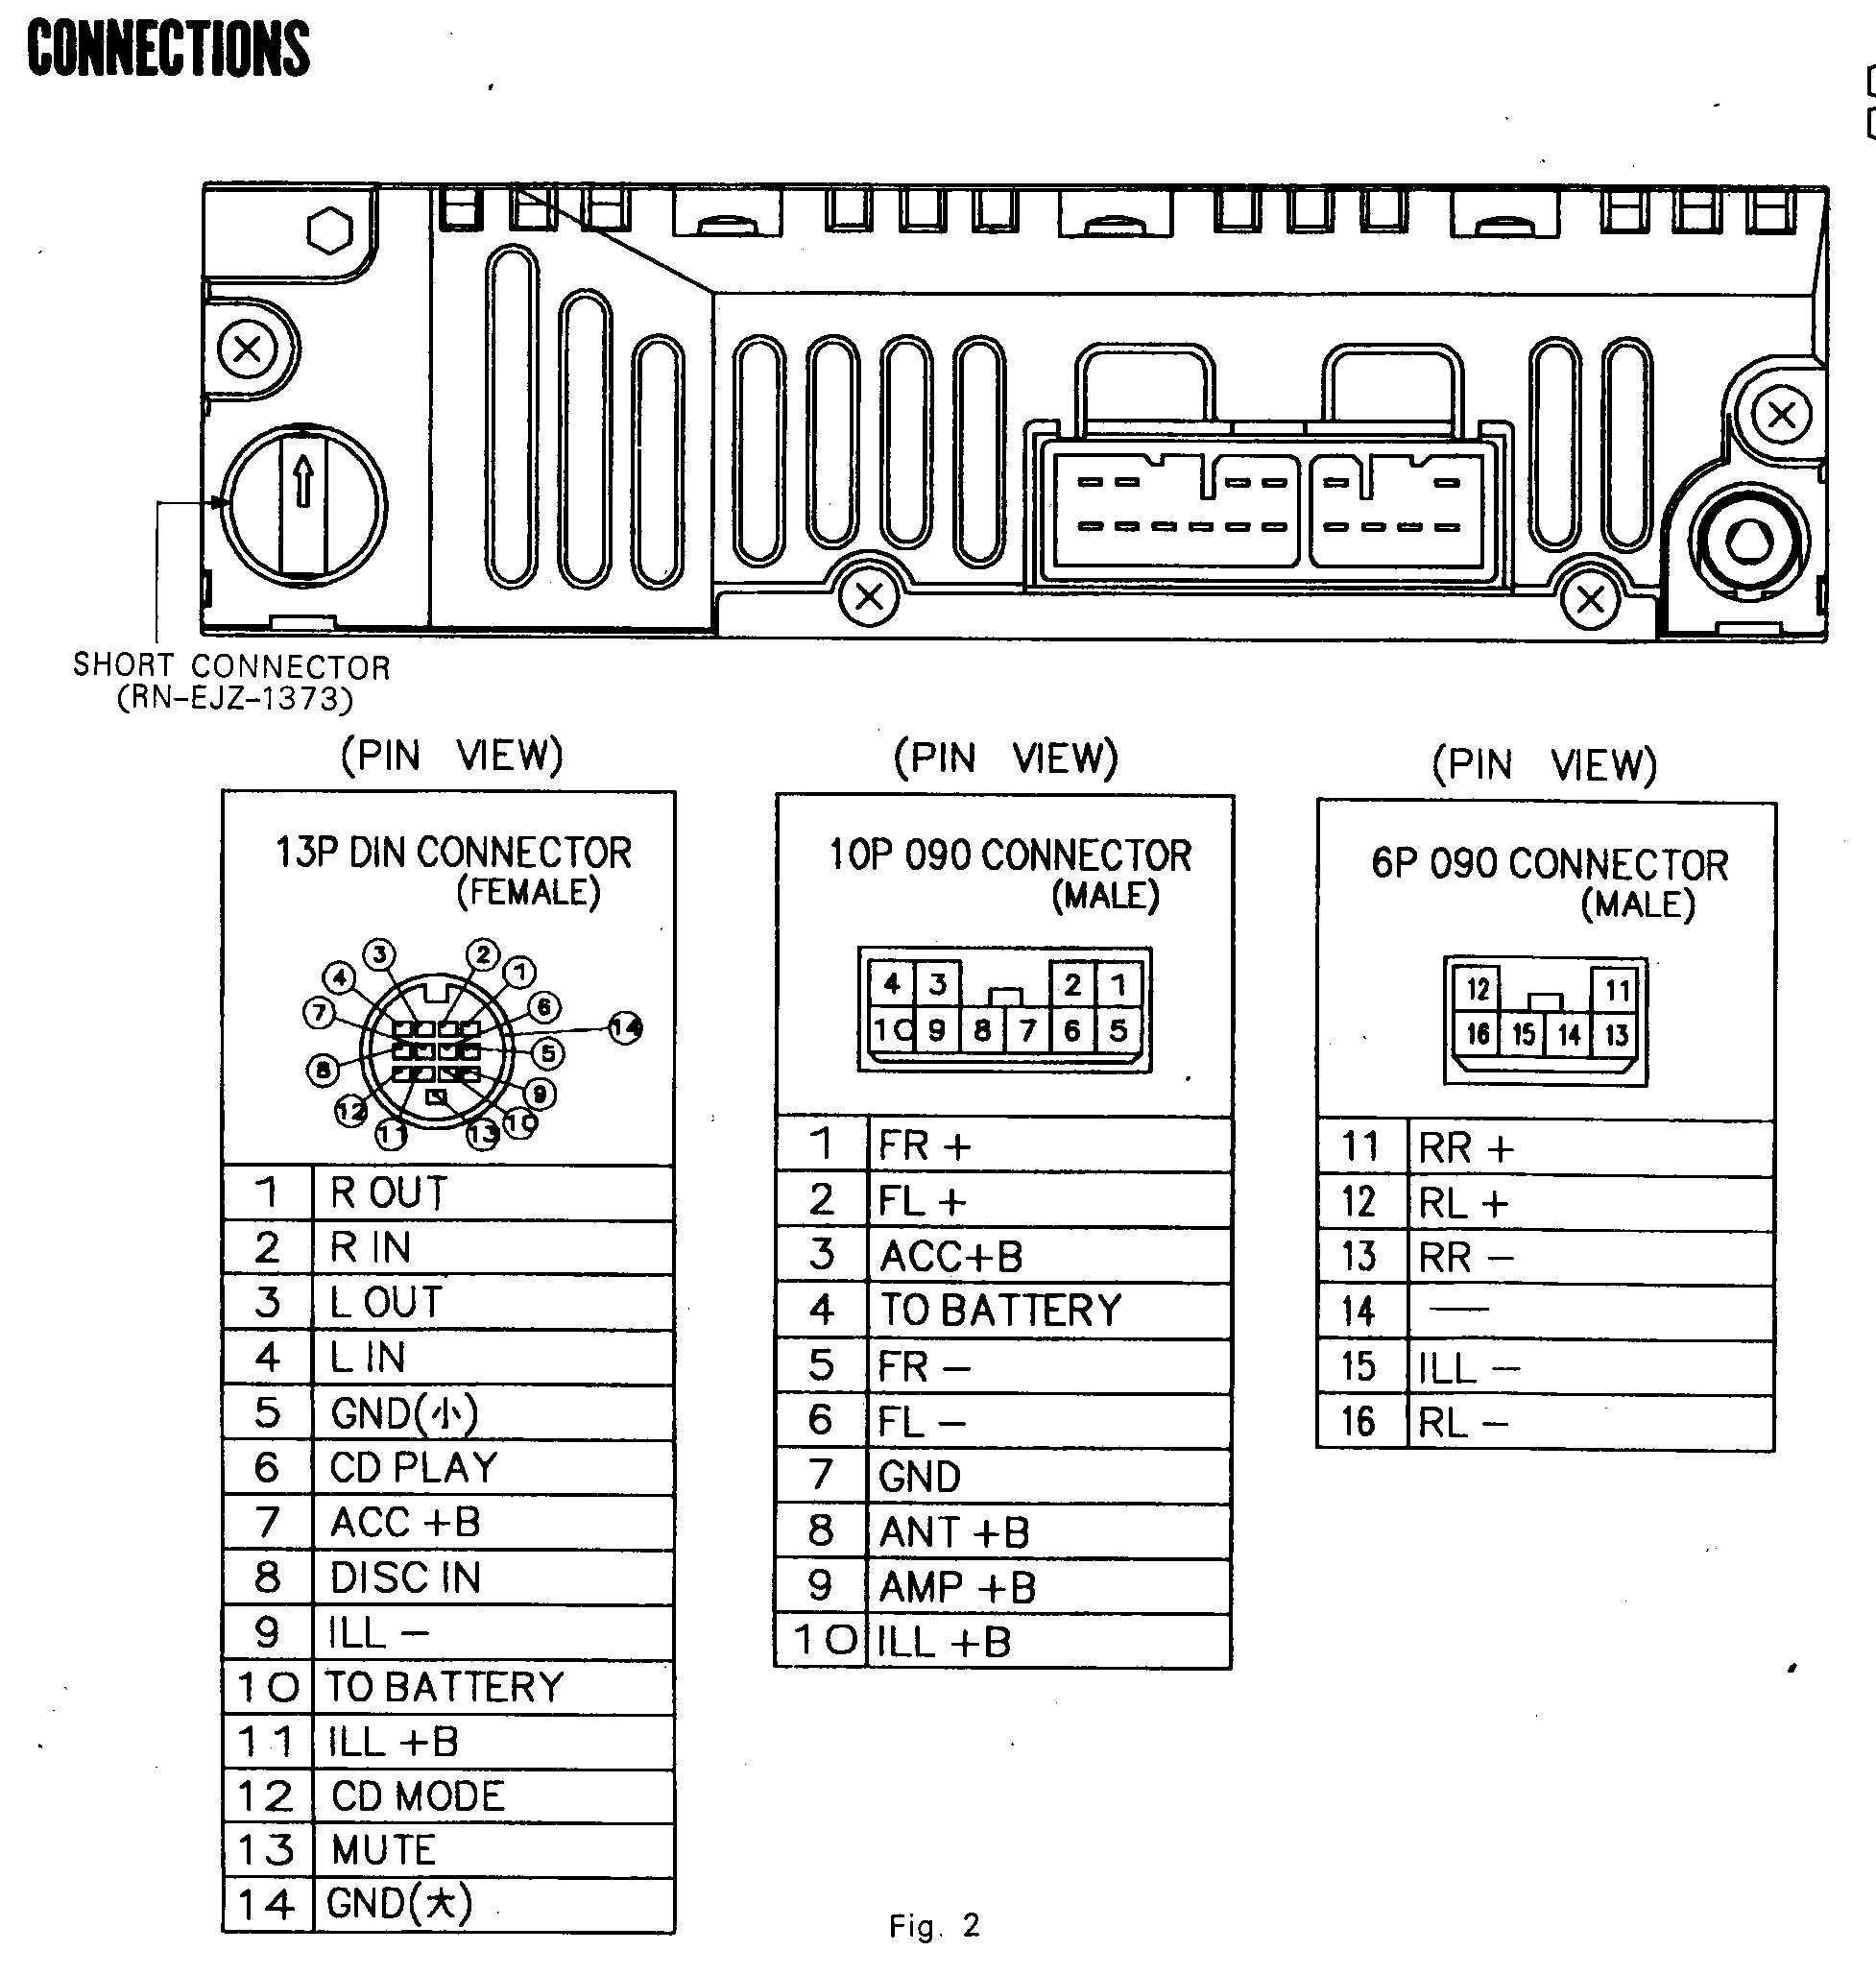 wiring 86120 toyota diagram tundra 0c130 schematic diagram database toyota 86120 0c130 wiring diagram wiring diagram [ 1954 x 2057 Pixel ]